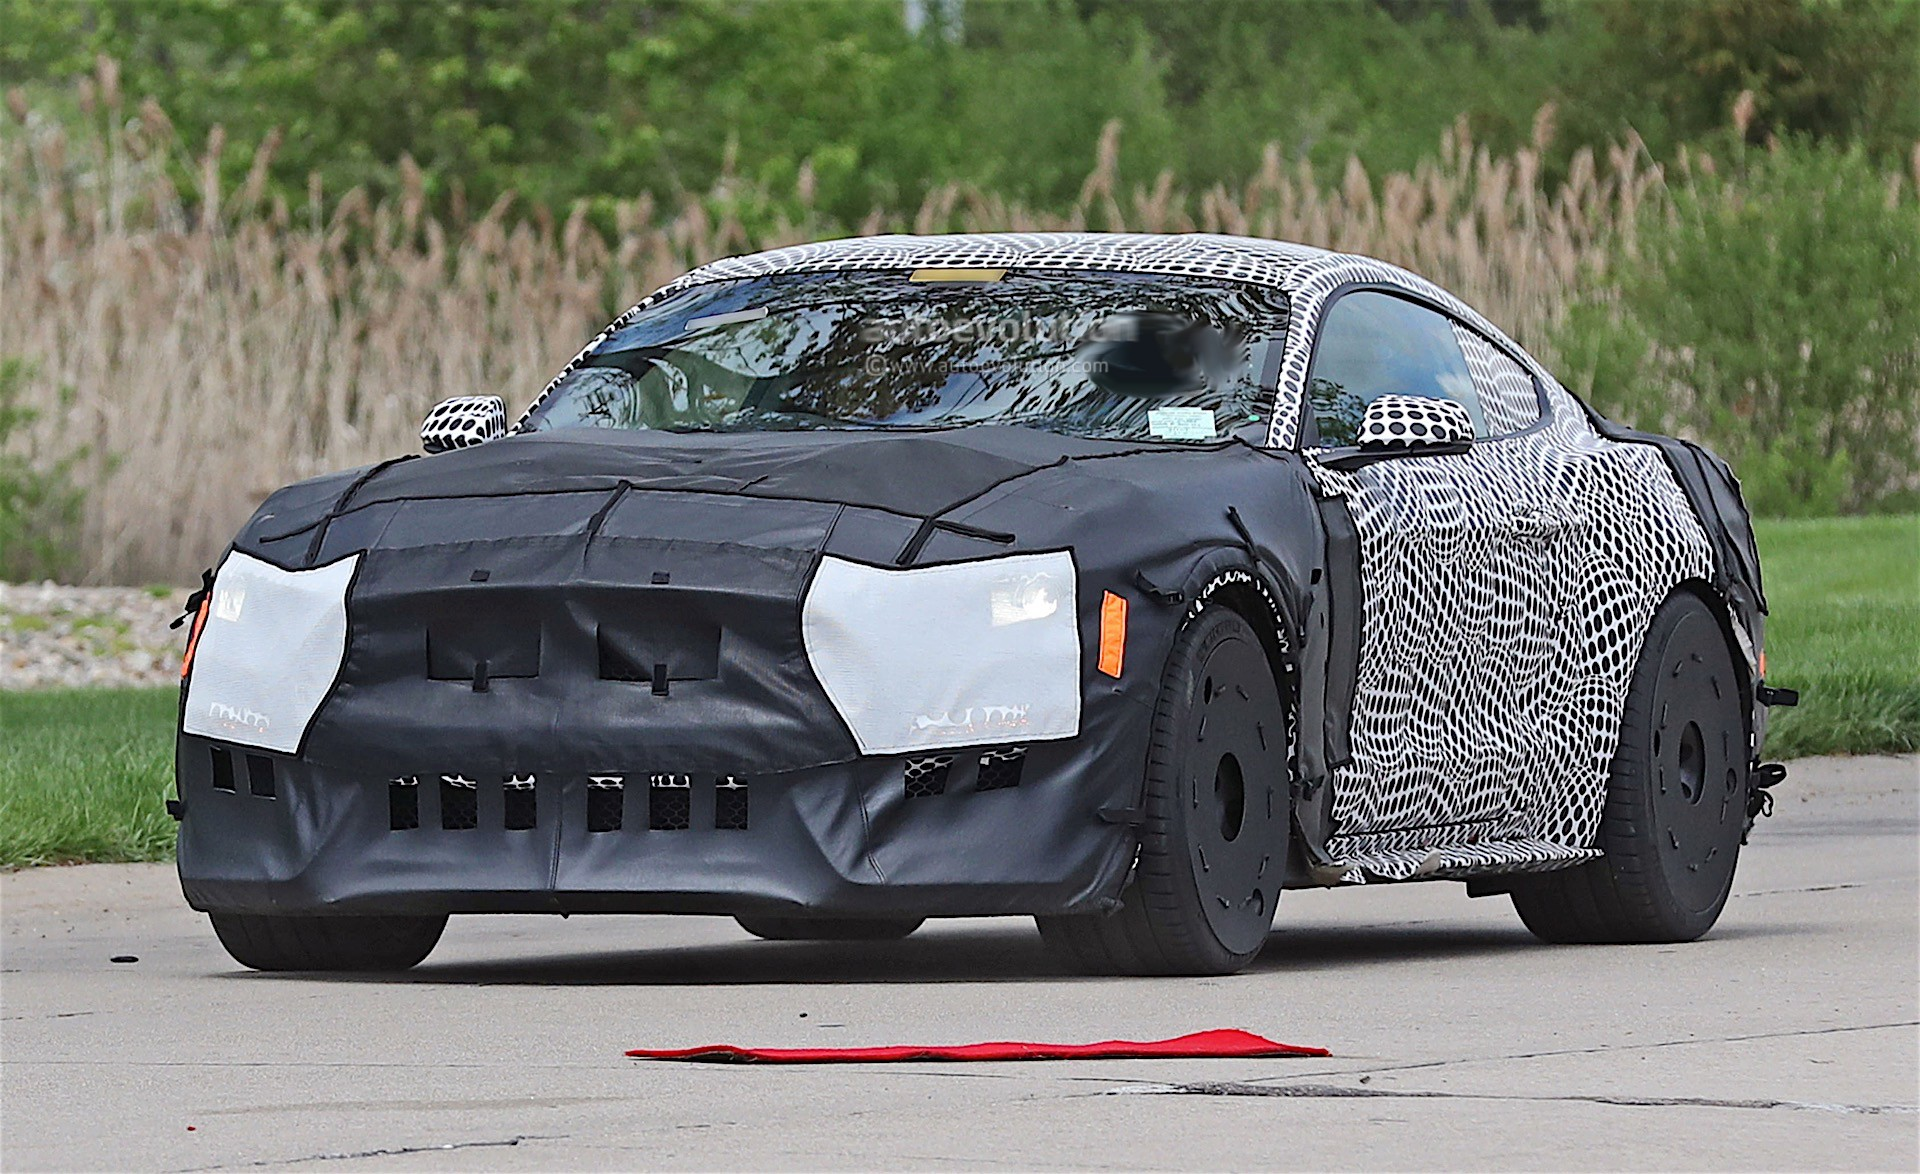 2019 shelby gt500 top speed confirmed to be over 200 mph 122576 1 فورد موستانگ شلبی GT500 مدل ۲۰۱۹   اجاره ماشین